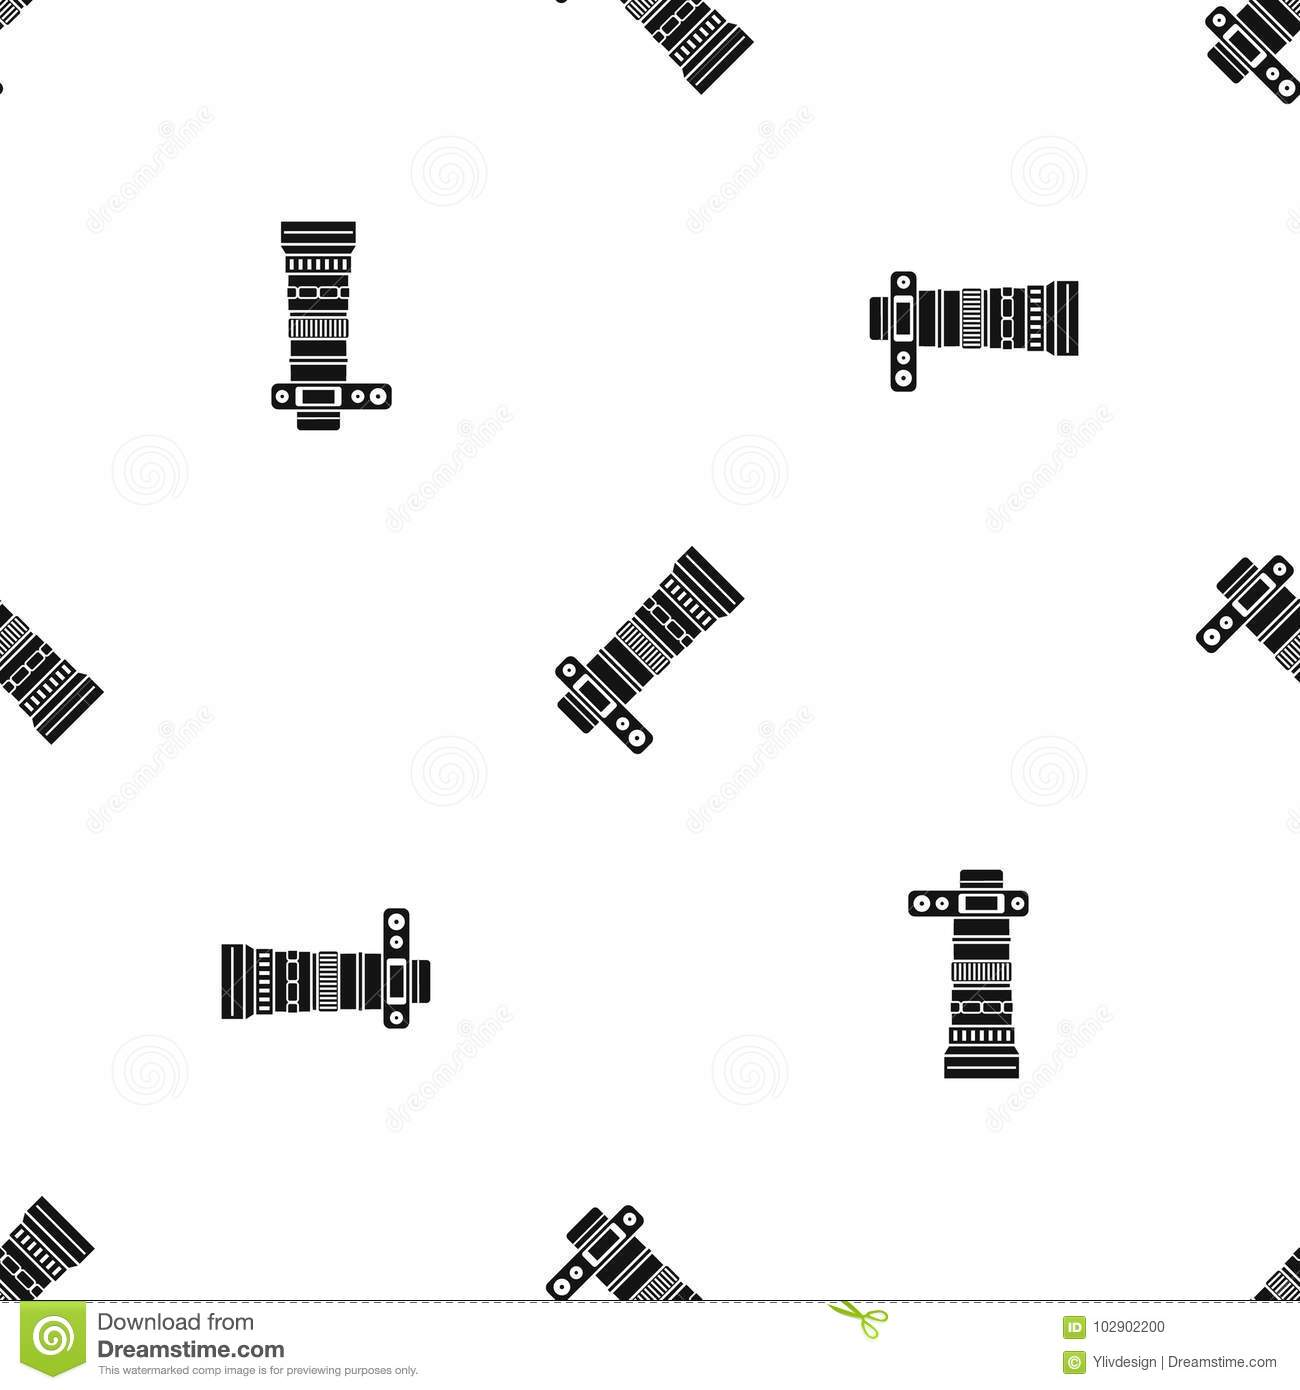 Dslr Camera With Zoom Lens Pattern Seamless Black Stock